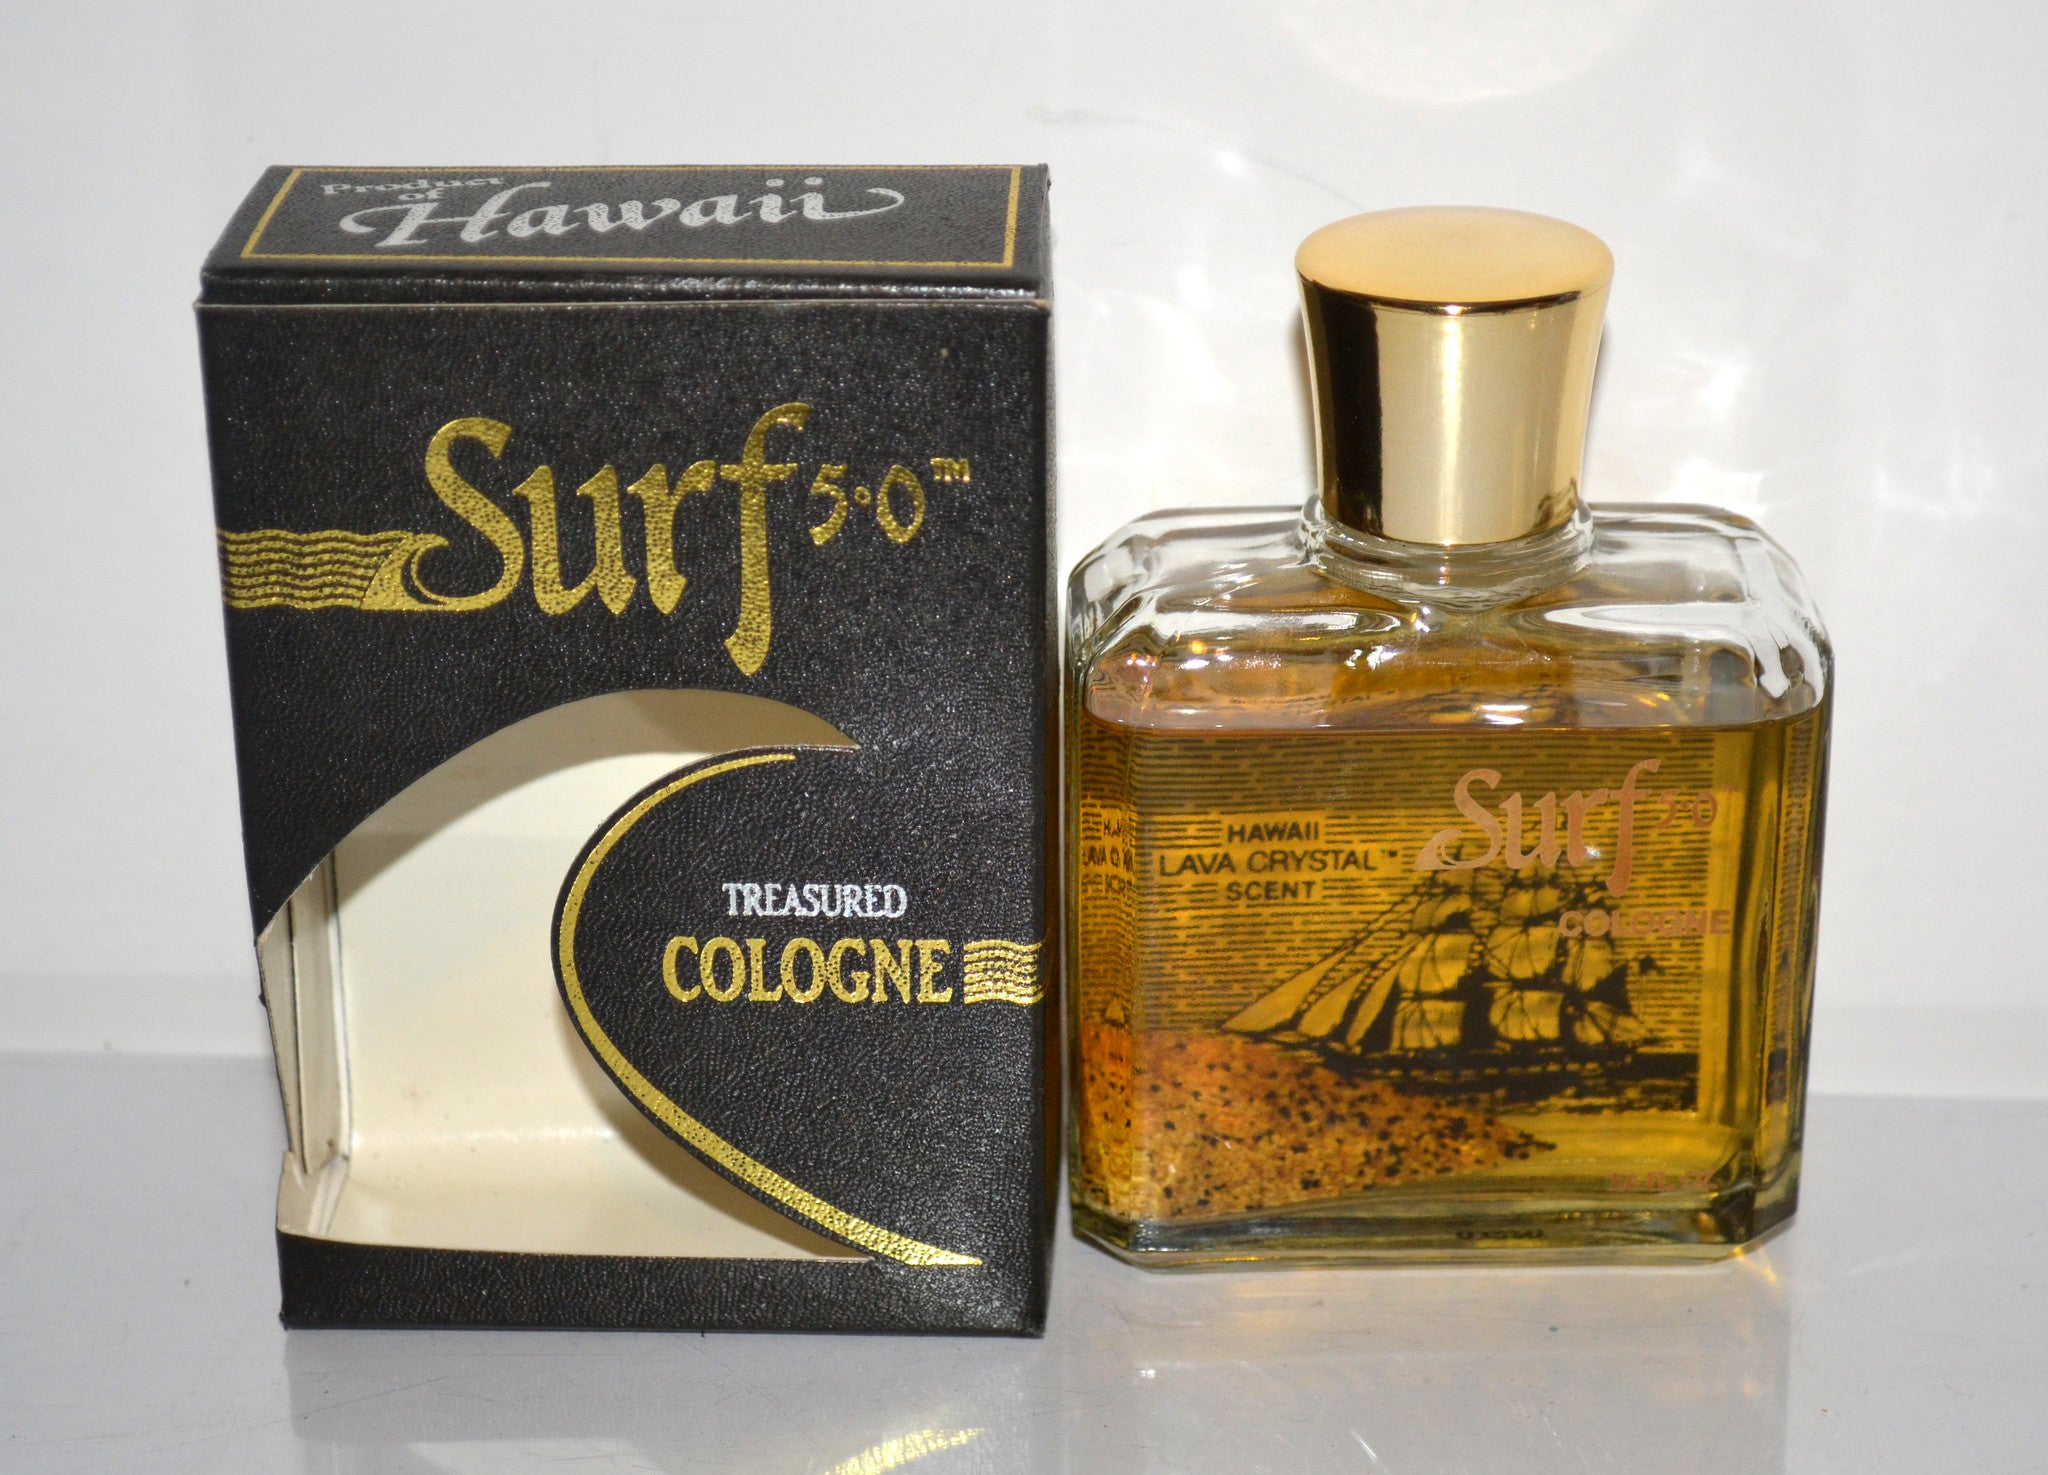 Products of Havana Surf 5.0 Treasured Cologne